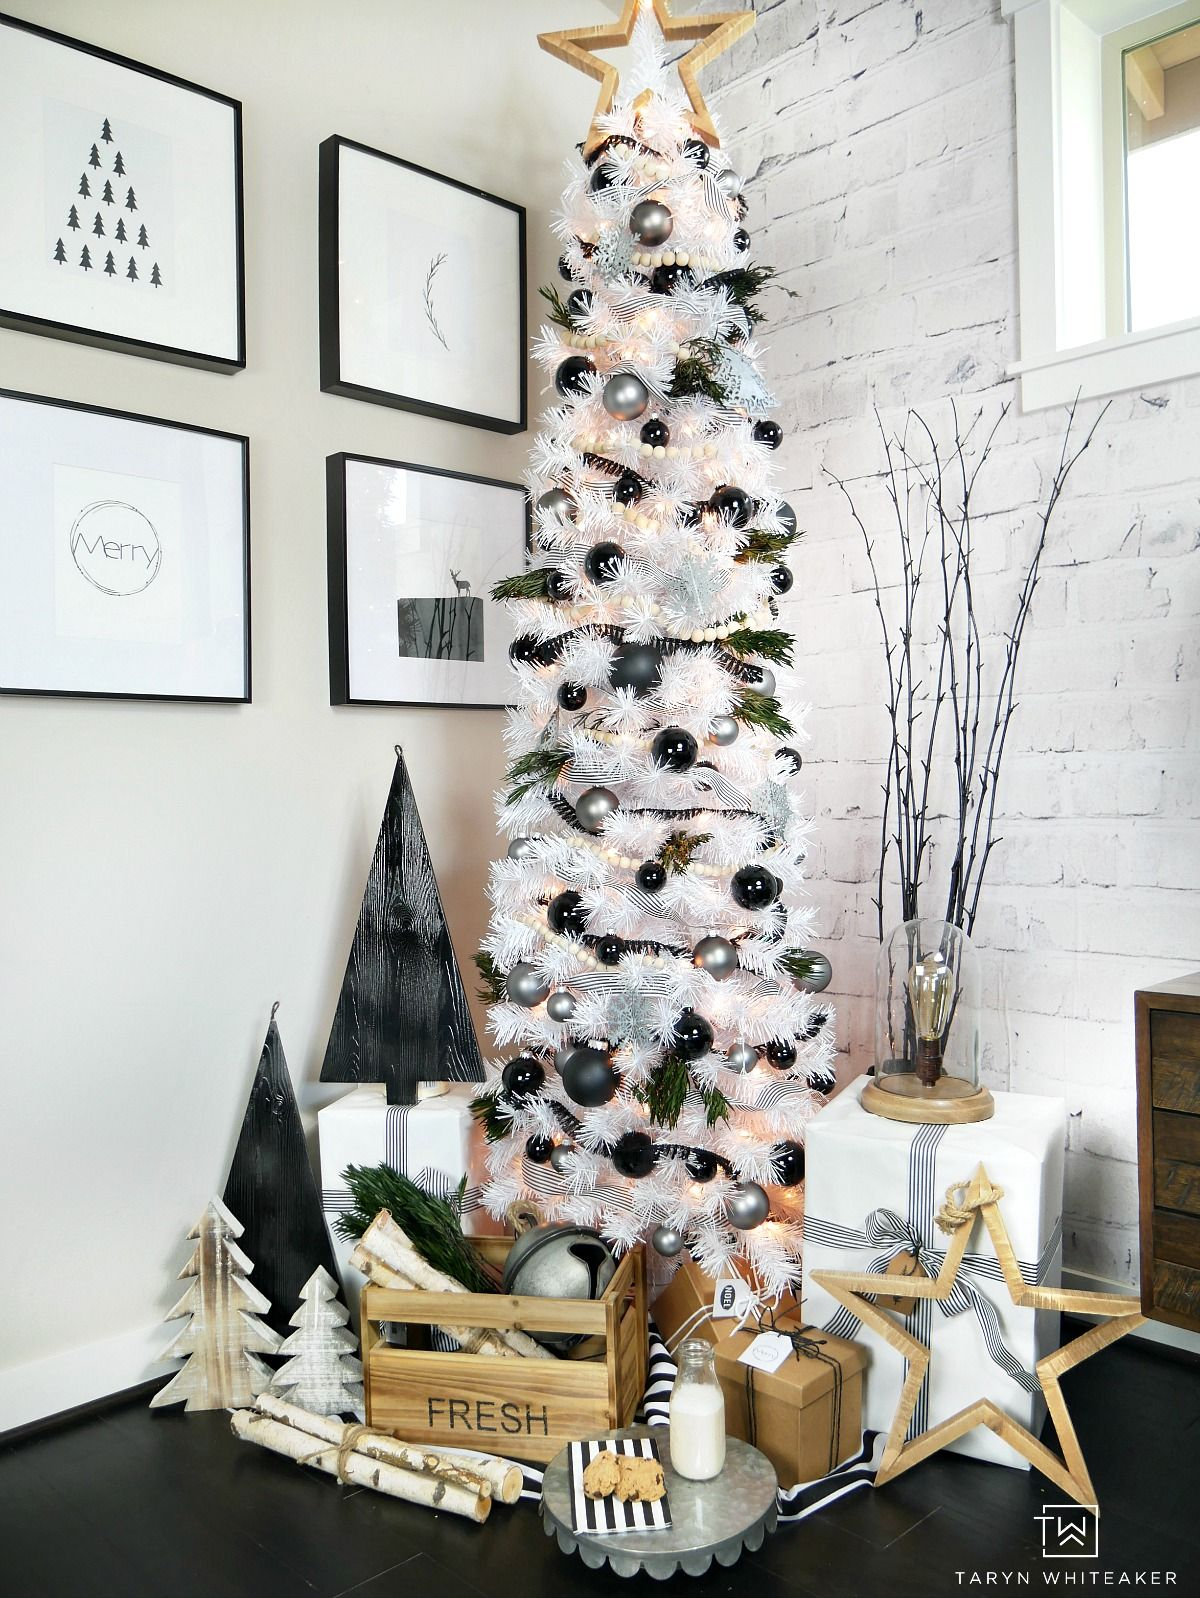 Taryn creates this Modern Black and White Christmas Tree display in her  home using a tall